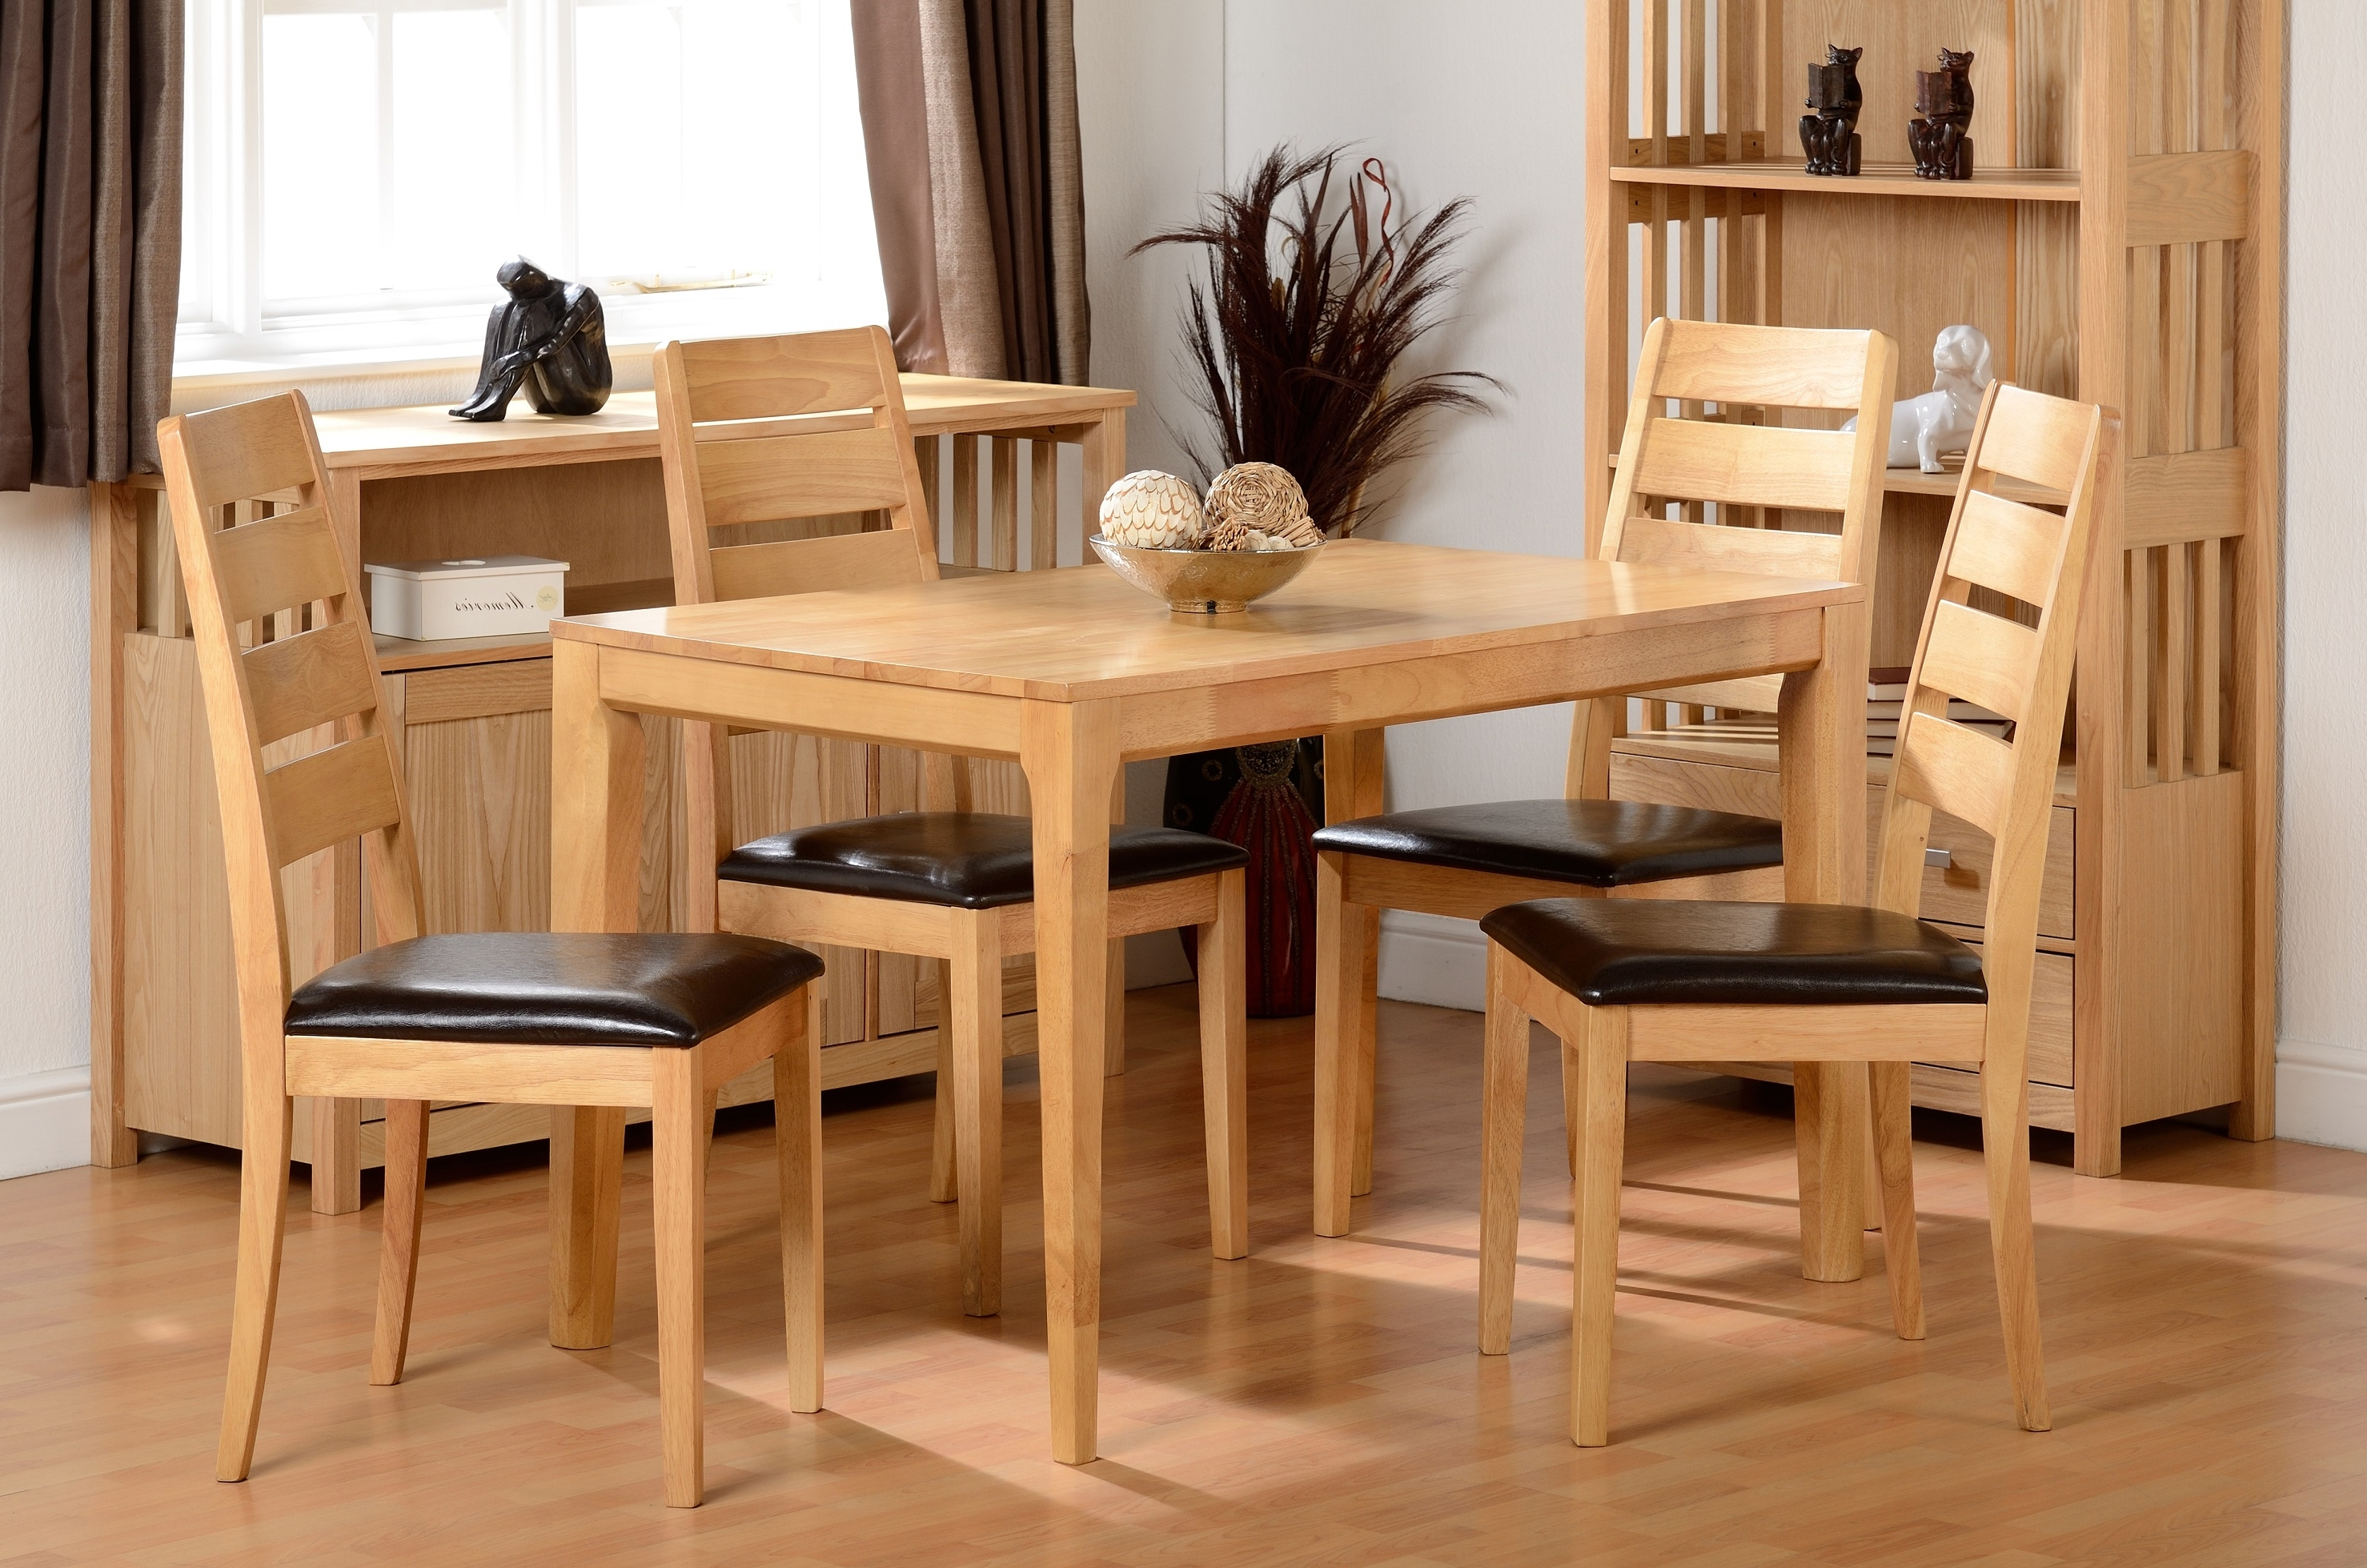 Best And Newest Essex Logan Dining Table & 4 Chairs – Offersbargains Regarding Logan Dining Tables (View 5 of 25)